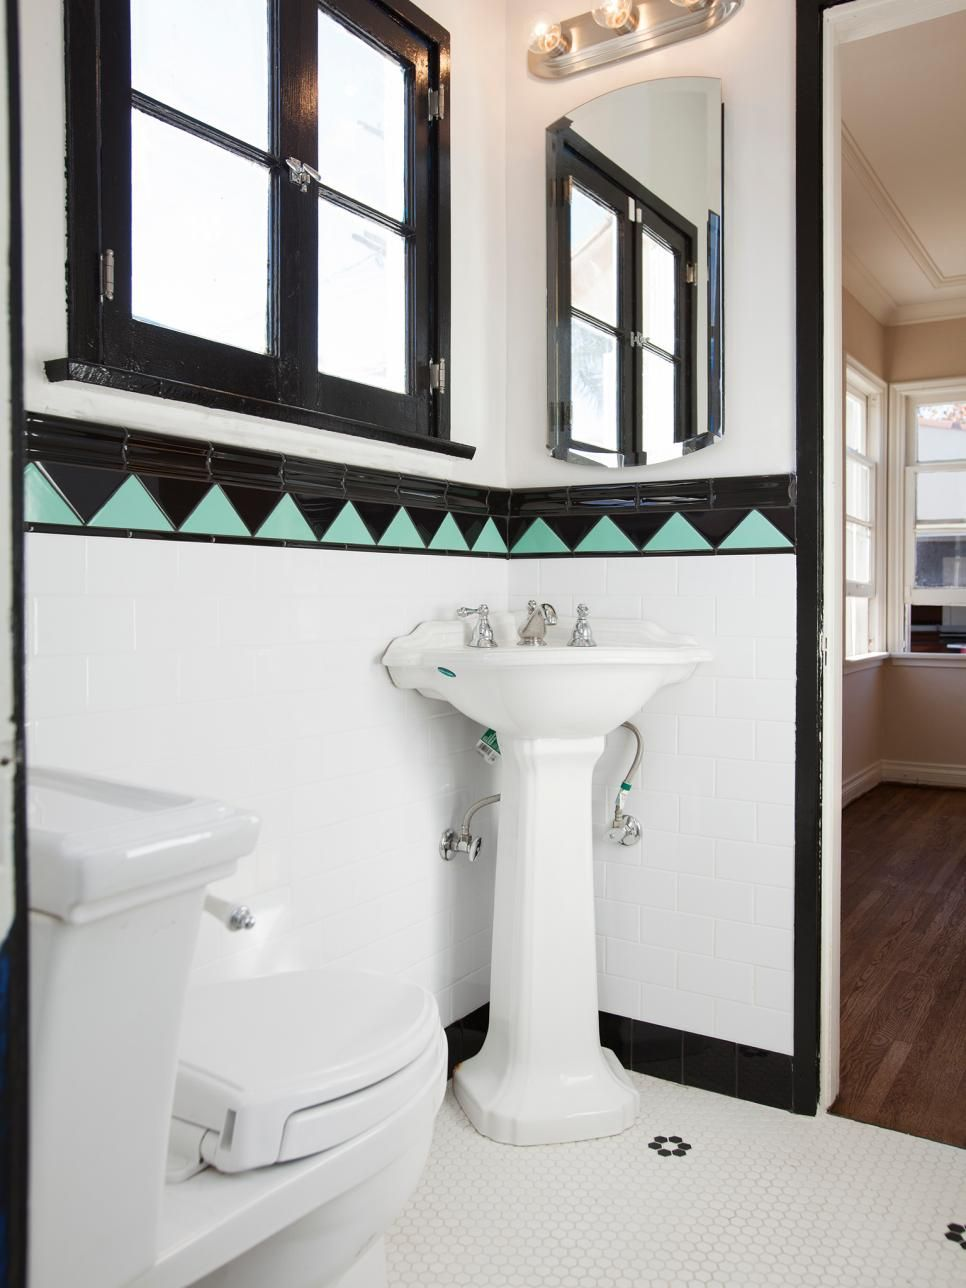 20 Small Bathroom Before And Afters Bathroom Tile Designs Simple Bathroom Remodel Bathroom Design Small